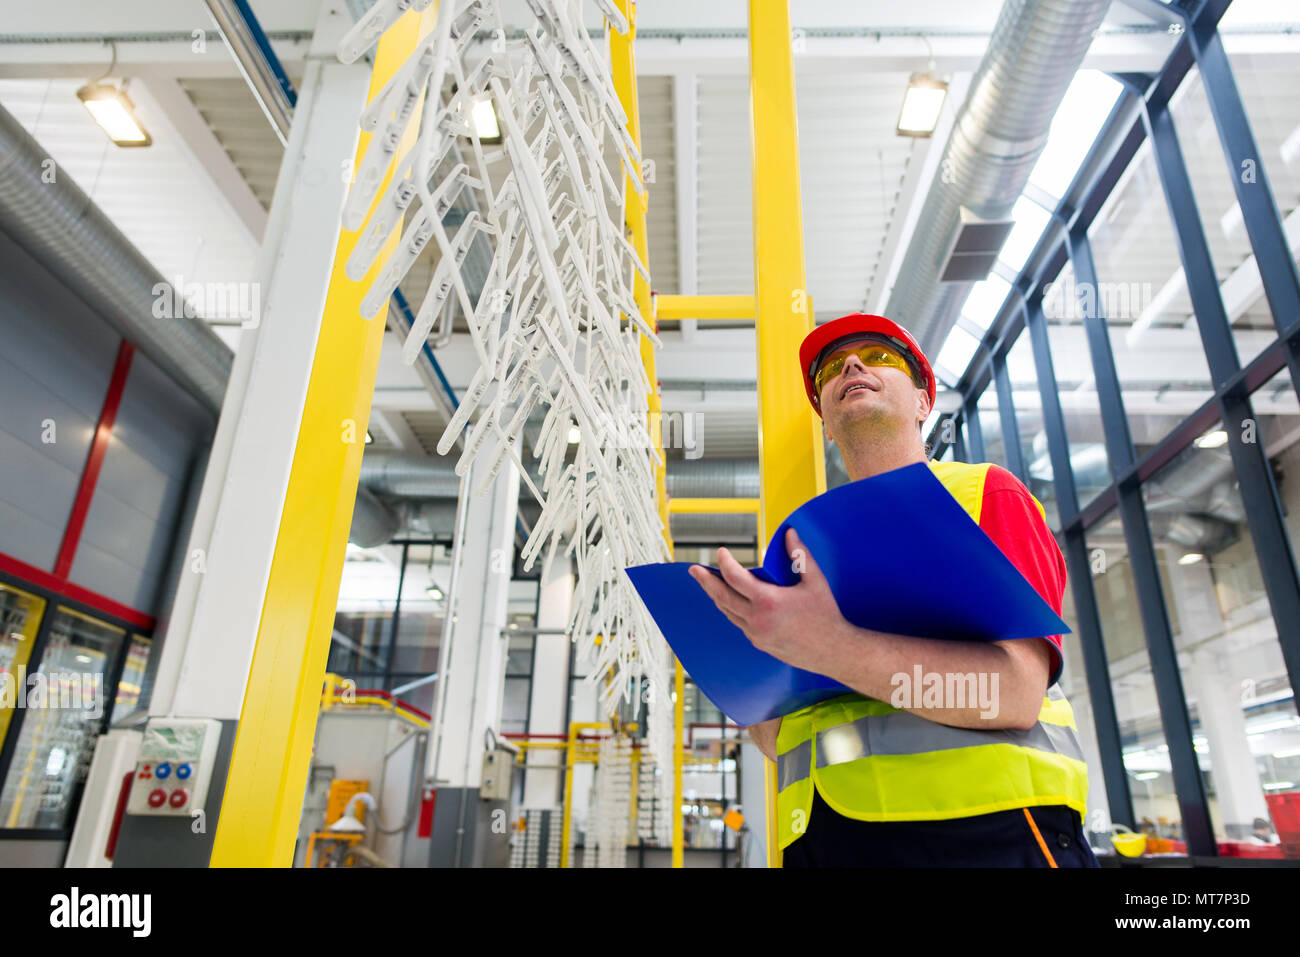 Factory supervisor in yellow reflective west with red helmet. Factory engineer checking production line holding blue folder with documents - Stock Image